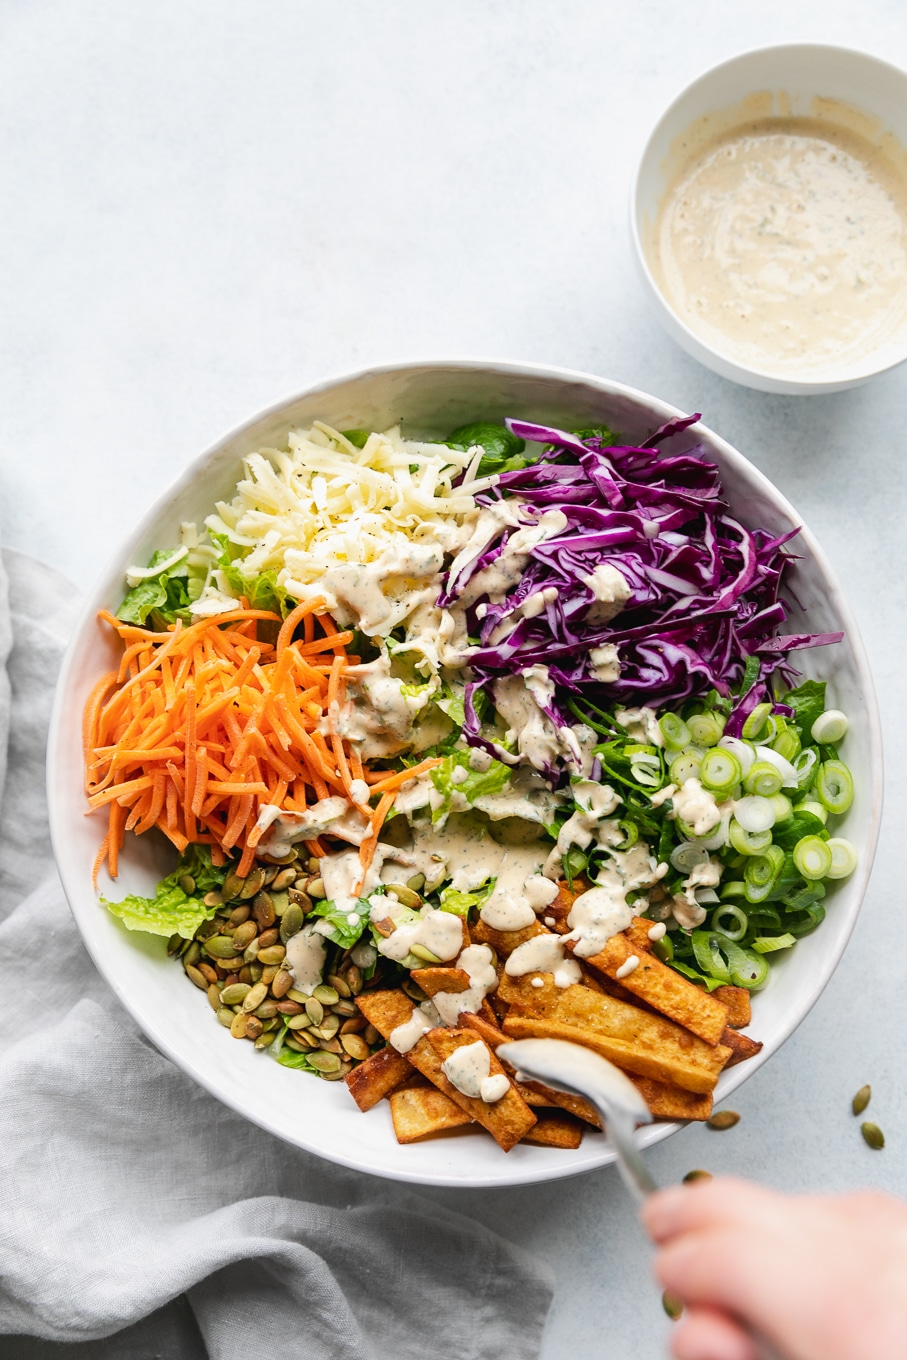 Overhead shot of a large mixing bowl filled with chopped romaine, shredded carrots, shredded white cheddar, shredded red cabbage, scallions, and tortilla strips topped with a creamy sriracha ranch dressing